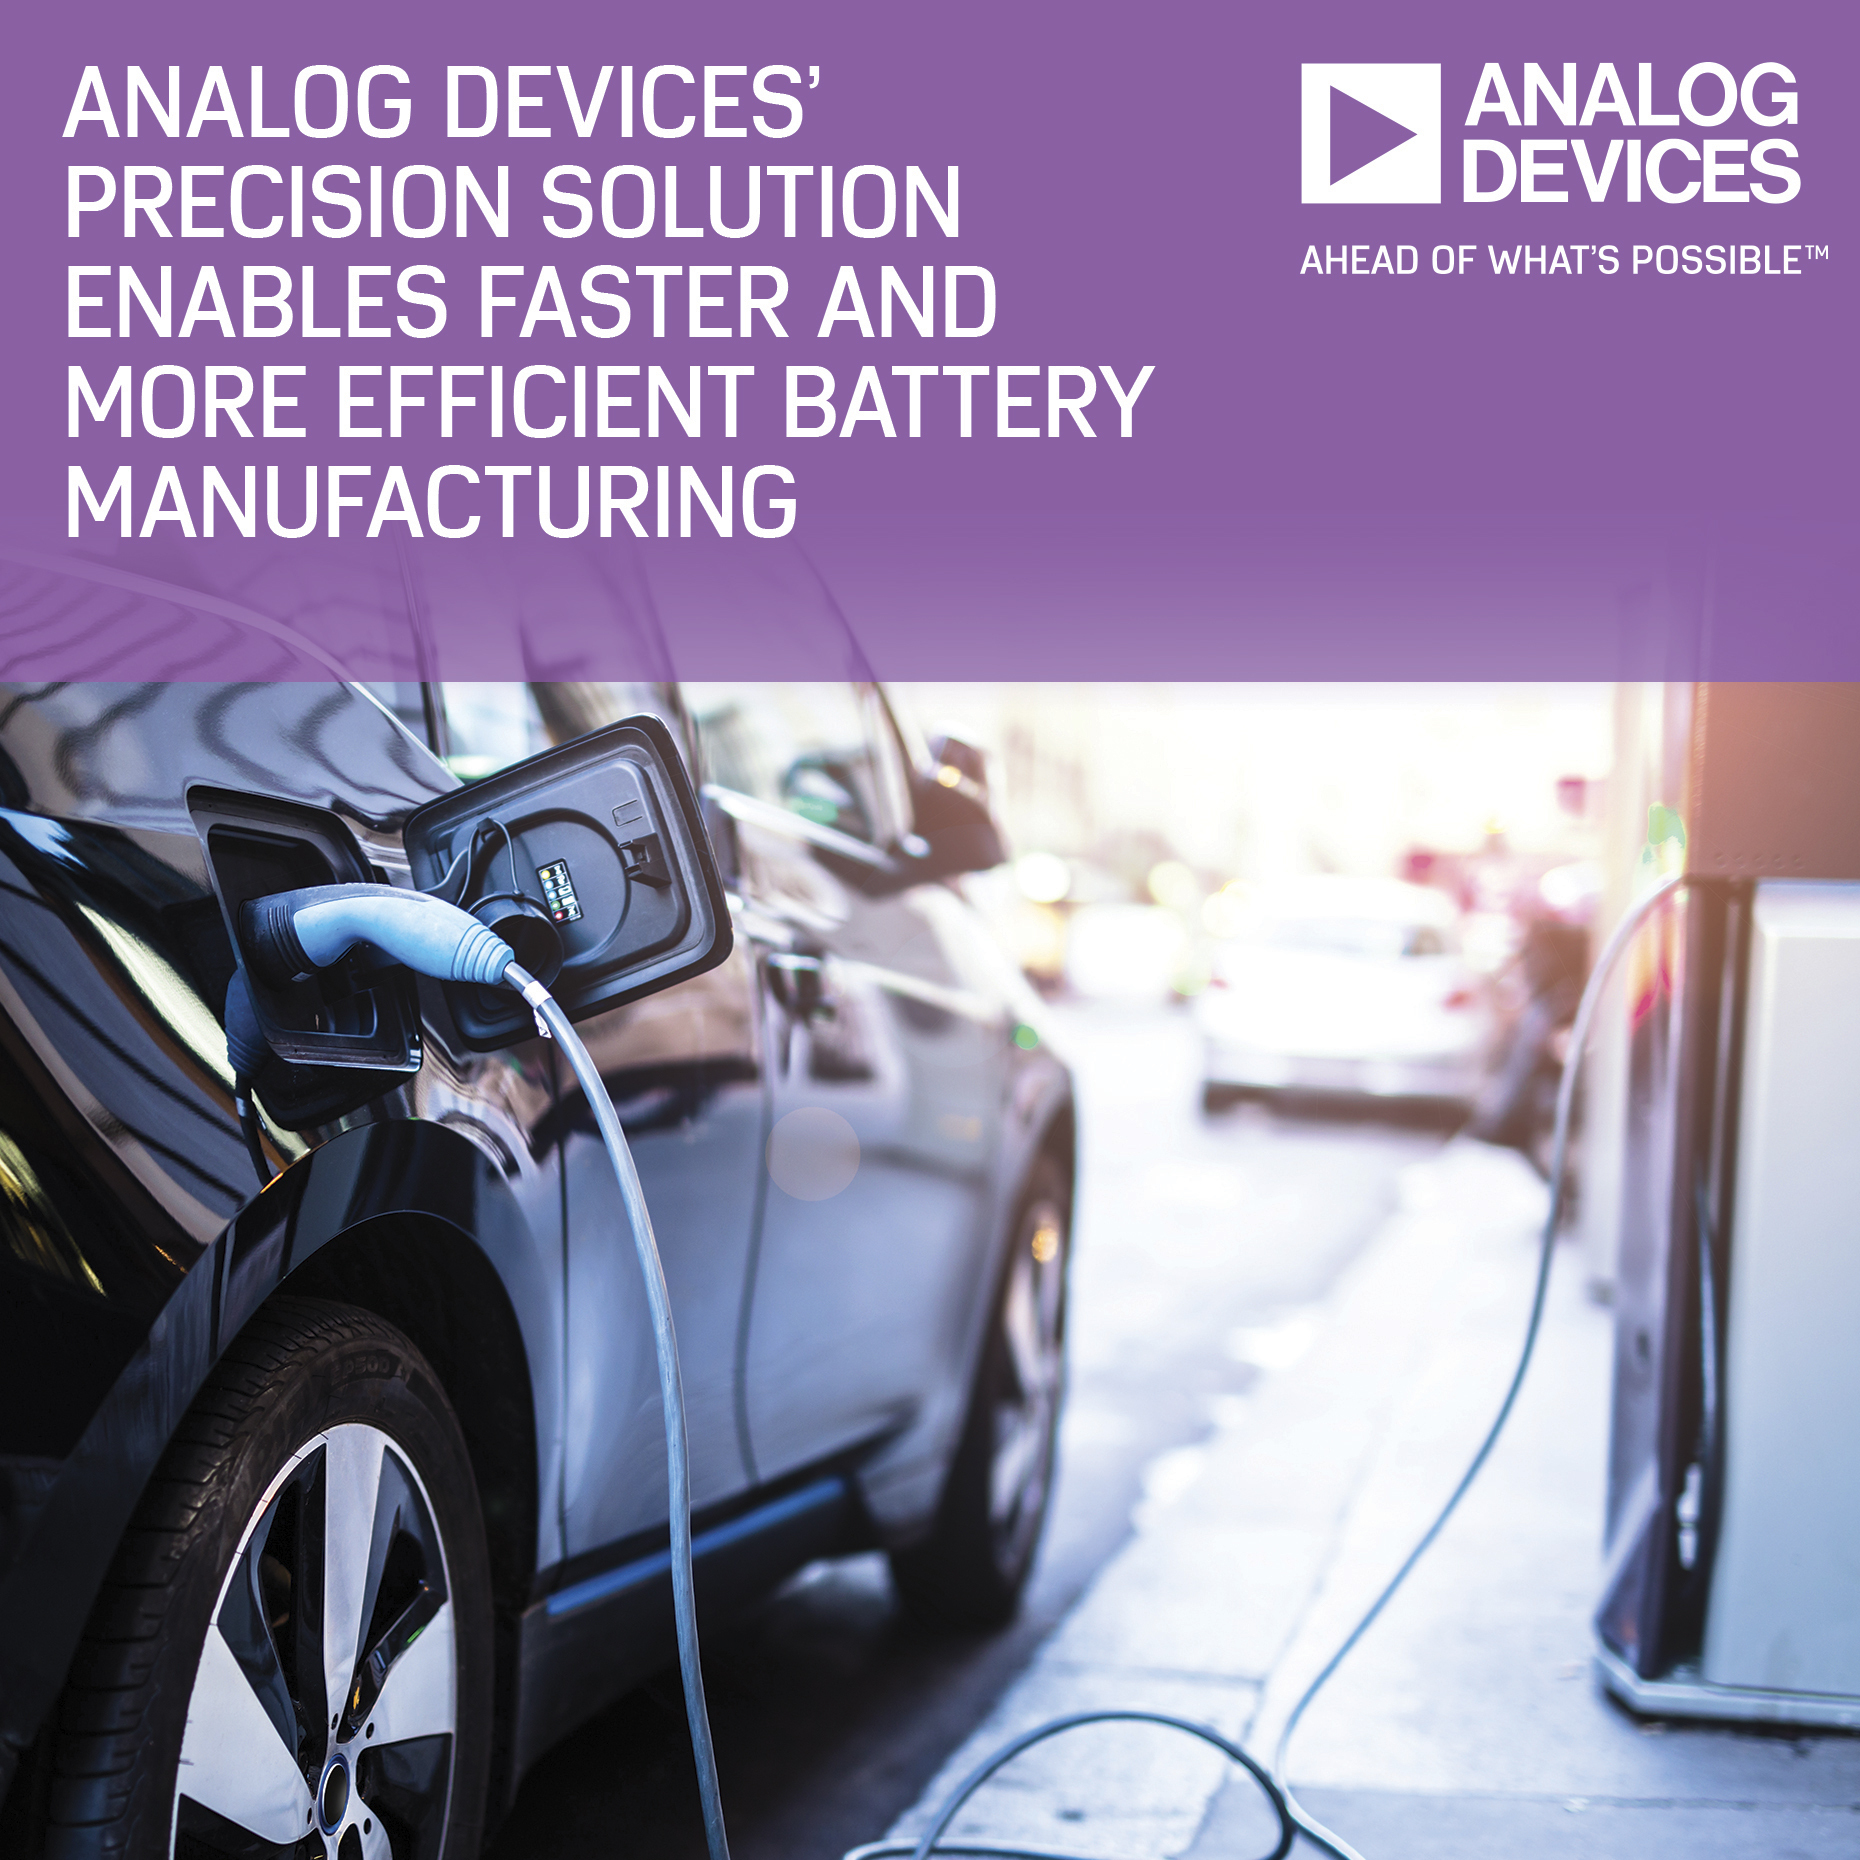 Integrated Precision Solution Enables Safer and Up to 50% More Efficient Battery Manufacturing